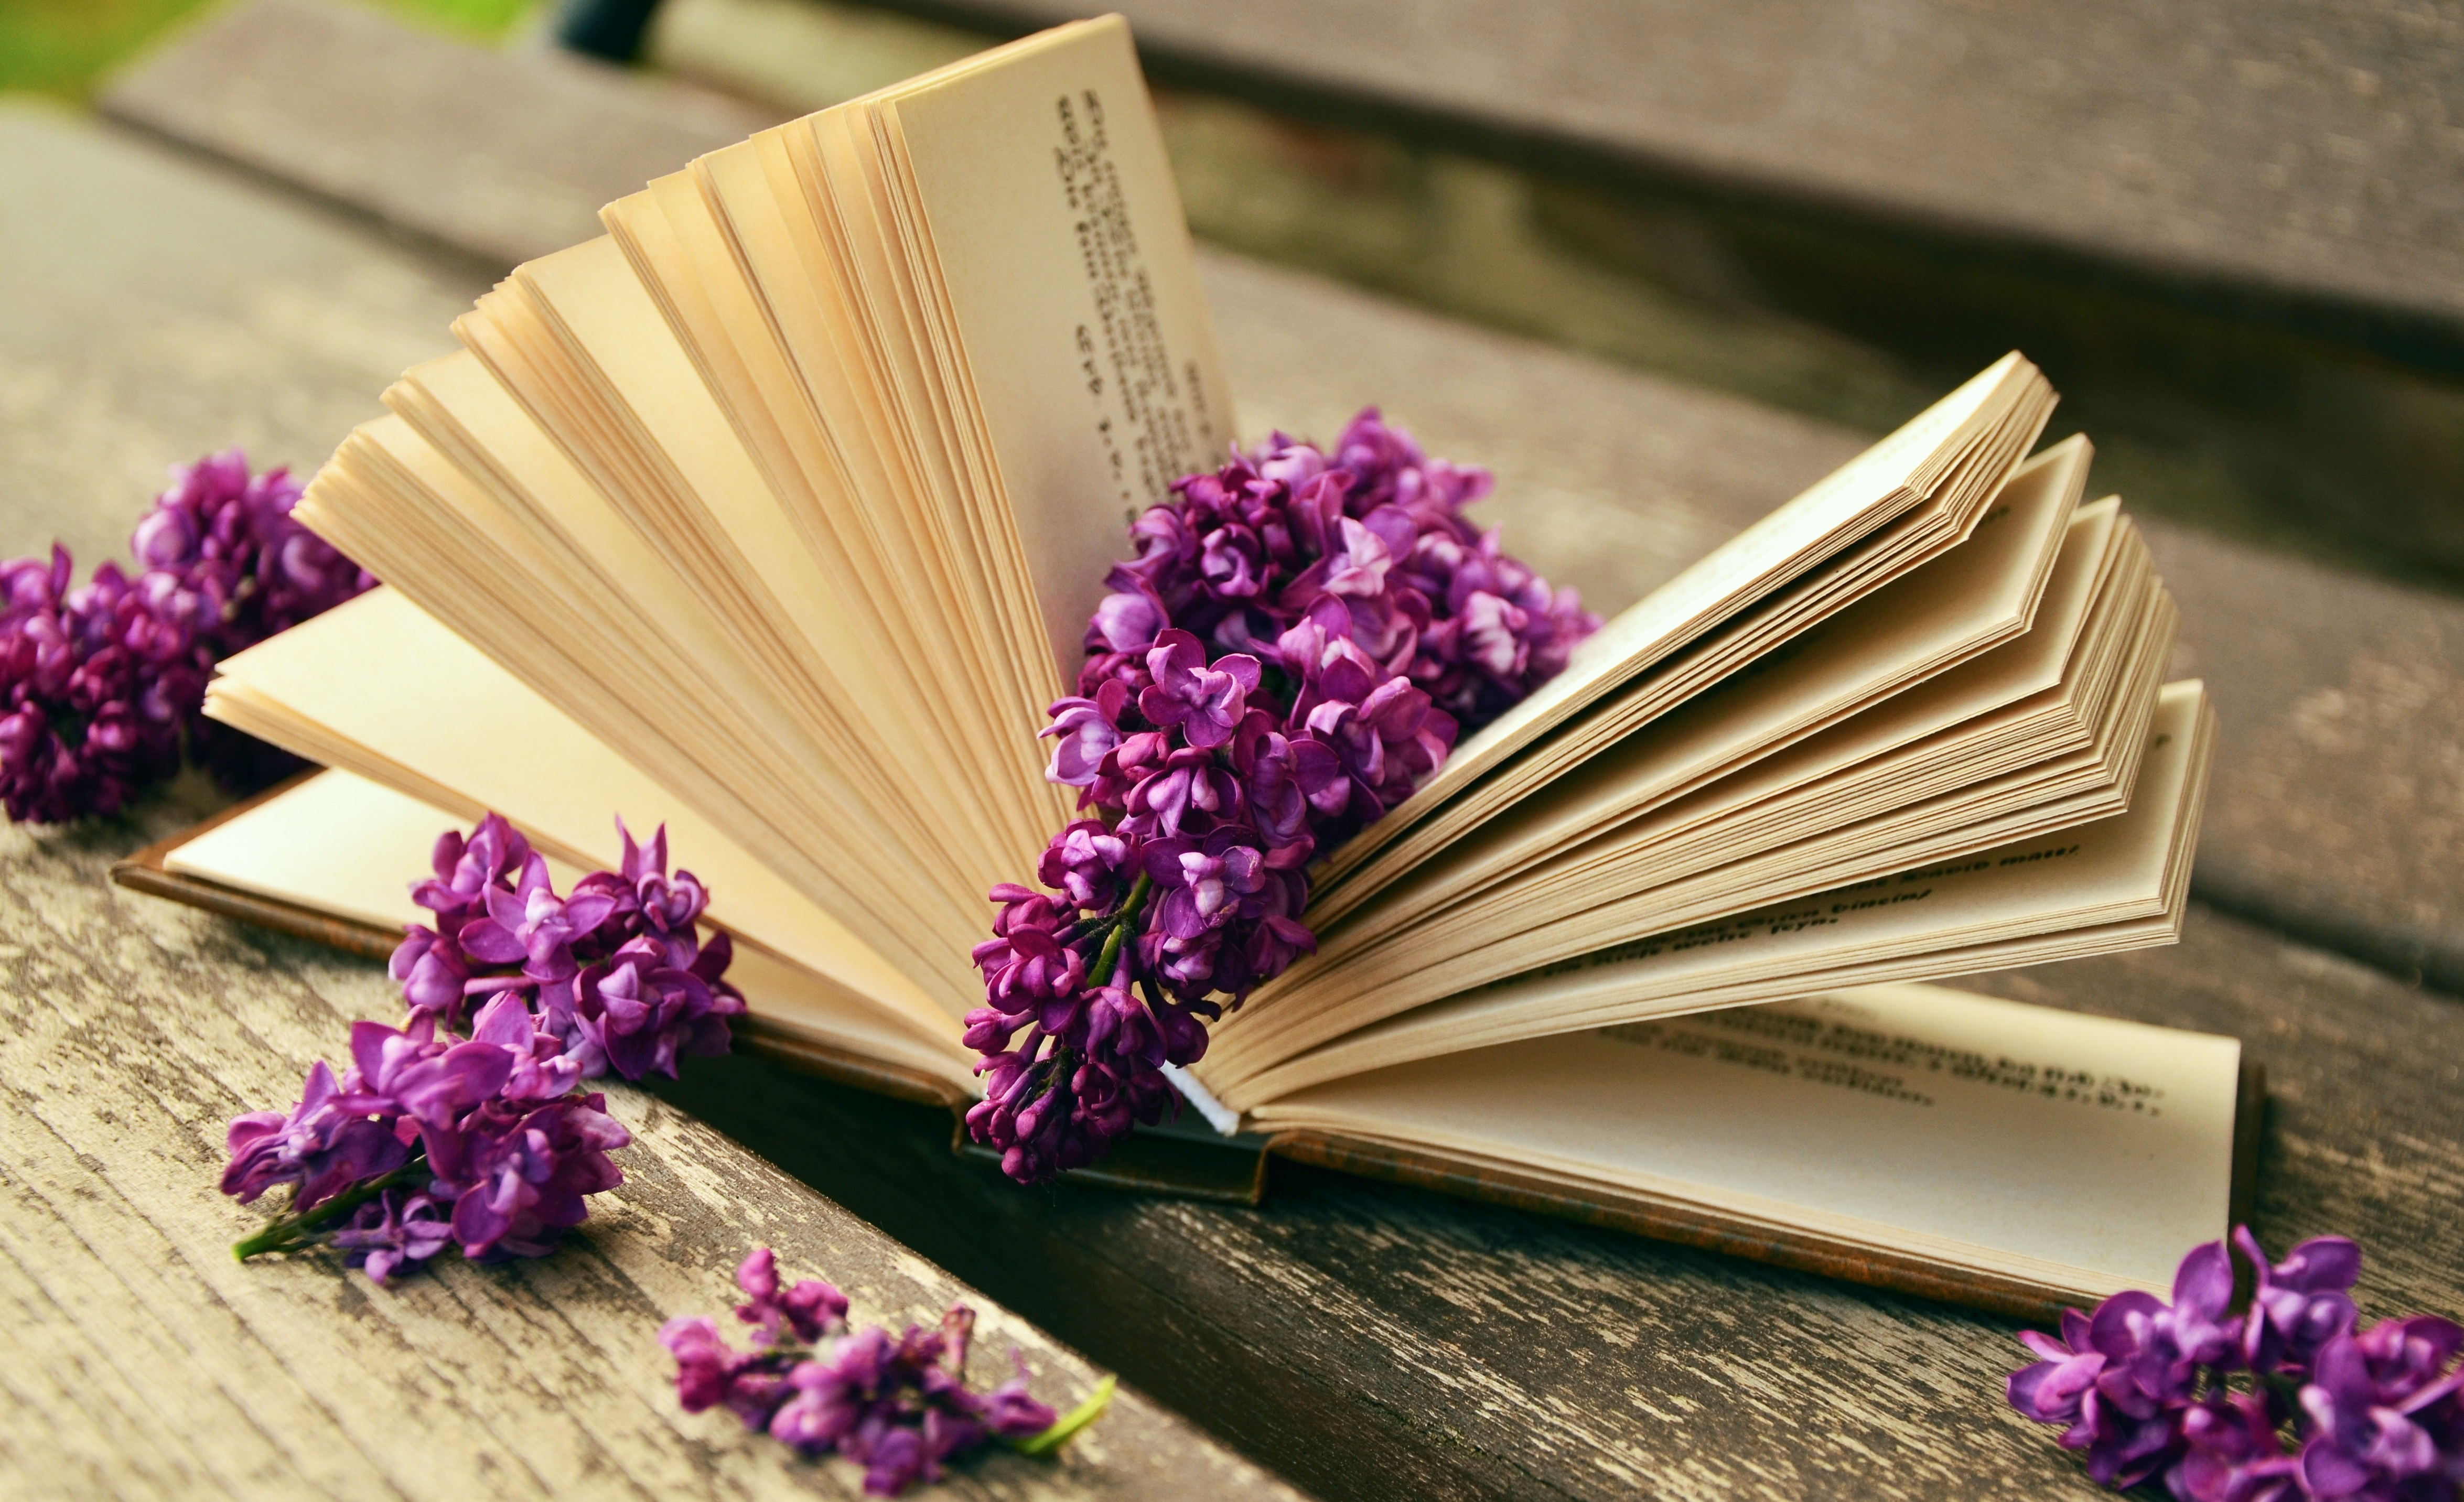 book-read-relax-lilac.jpg (4699×2865)